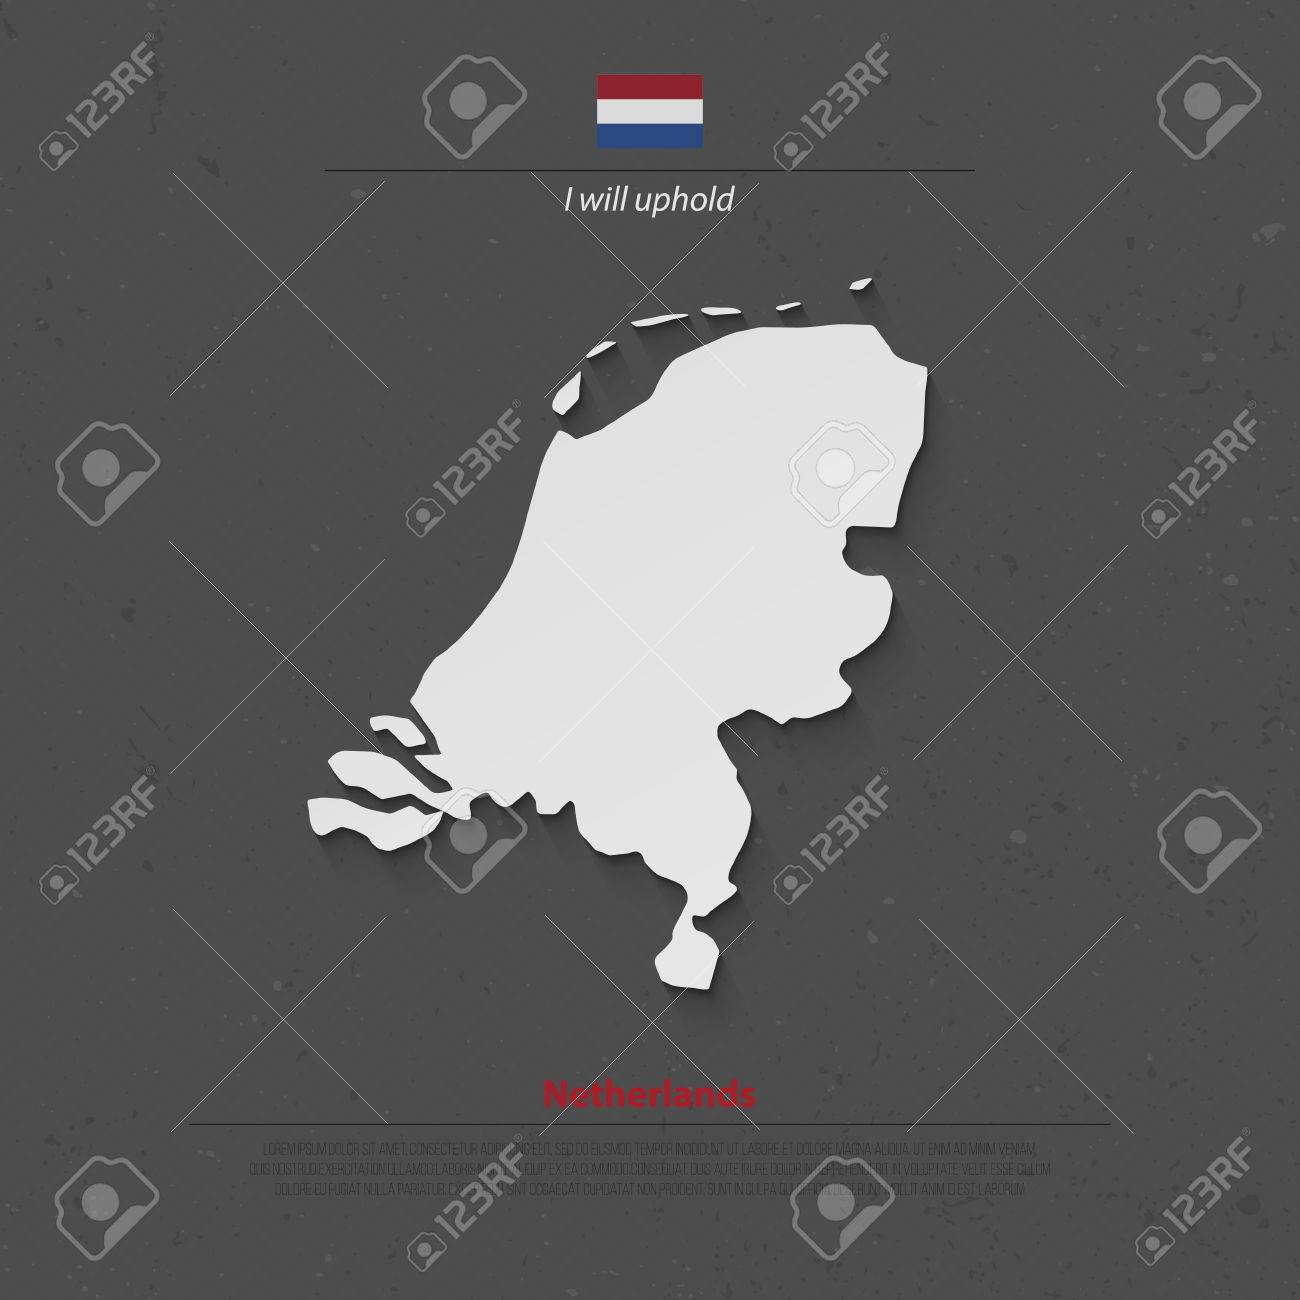 Kingdom of the Netherlands isolated map and official flag icons... on lao world map, slovak world map, bulgarian world map, europe world map, magyar world map, western desert world map, tibetan world map, mongol world map, videogame world map, england on world map, welsh world map, sami world map, celtic world map, sumerian world map, netherlands map, bahamian world map, map of india on world map, bohemian world map, byzantine world map, igbo world map,